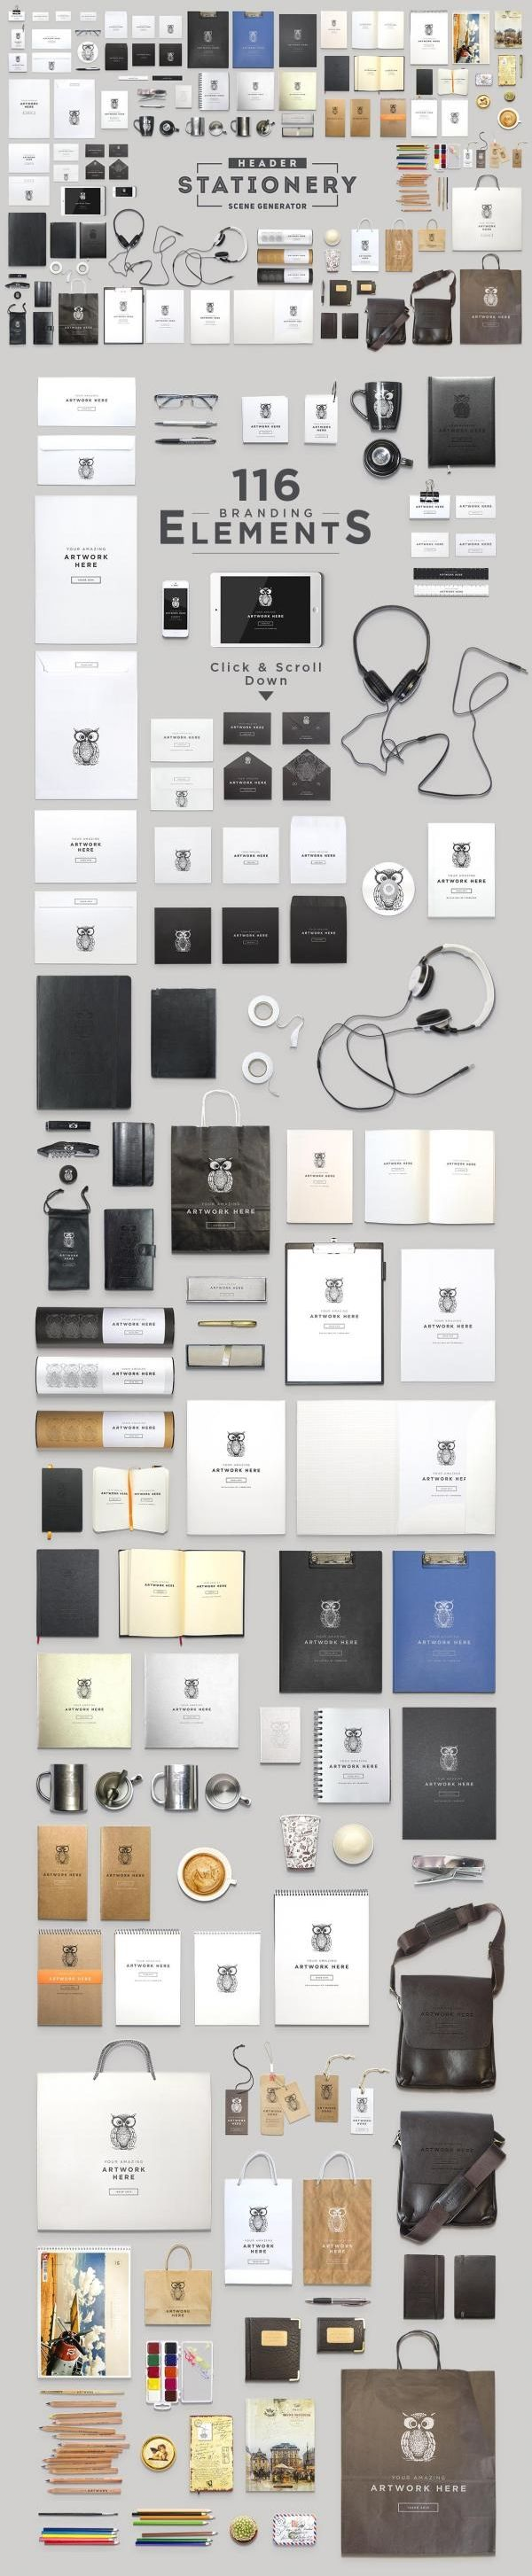 We've handpicked 91 of our top design products for this very special bundle. Discover all the amazing design goods 97% off only on Creative Market. (Sale Ends 5/19)